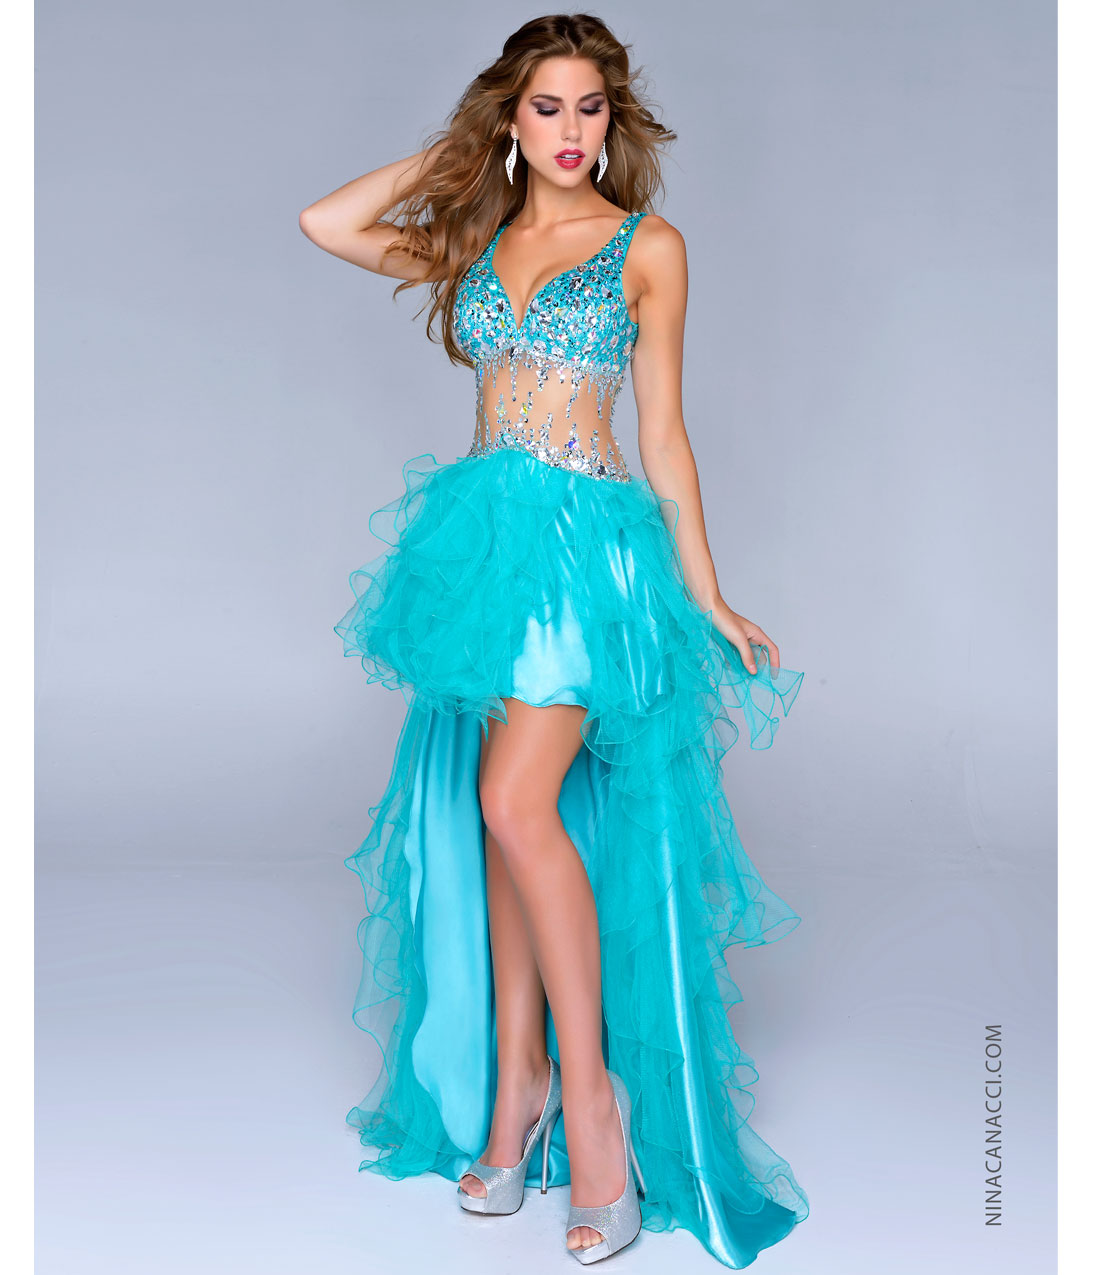 teal homecoming dresses 2014 great ideas for fashion